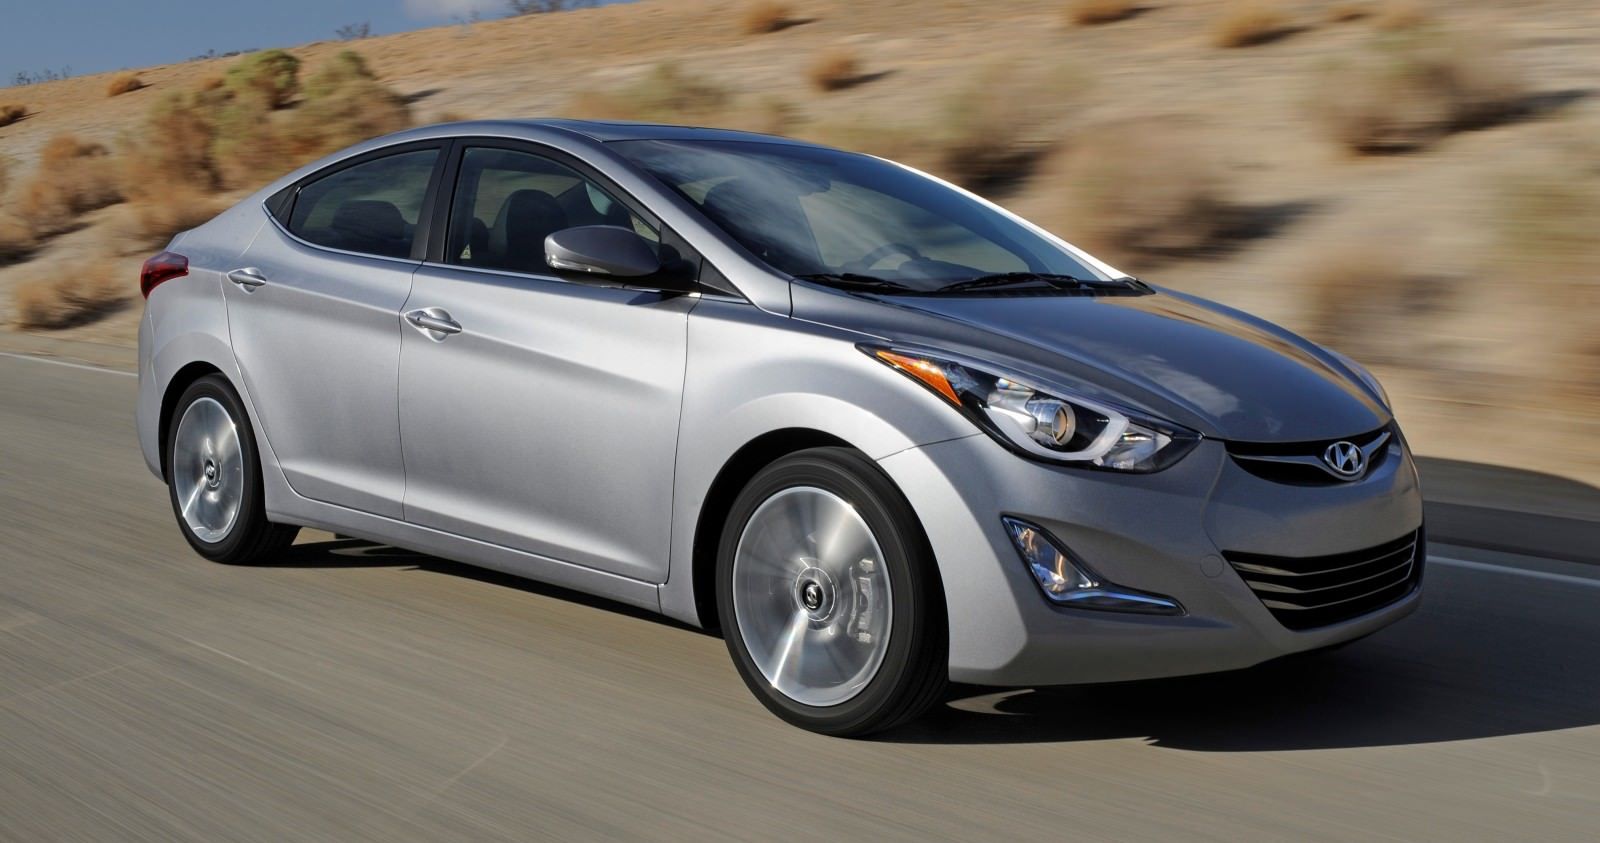 2015 Hyundai Elantra Sedan Brings Classy LED and Tech Updates  5